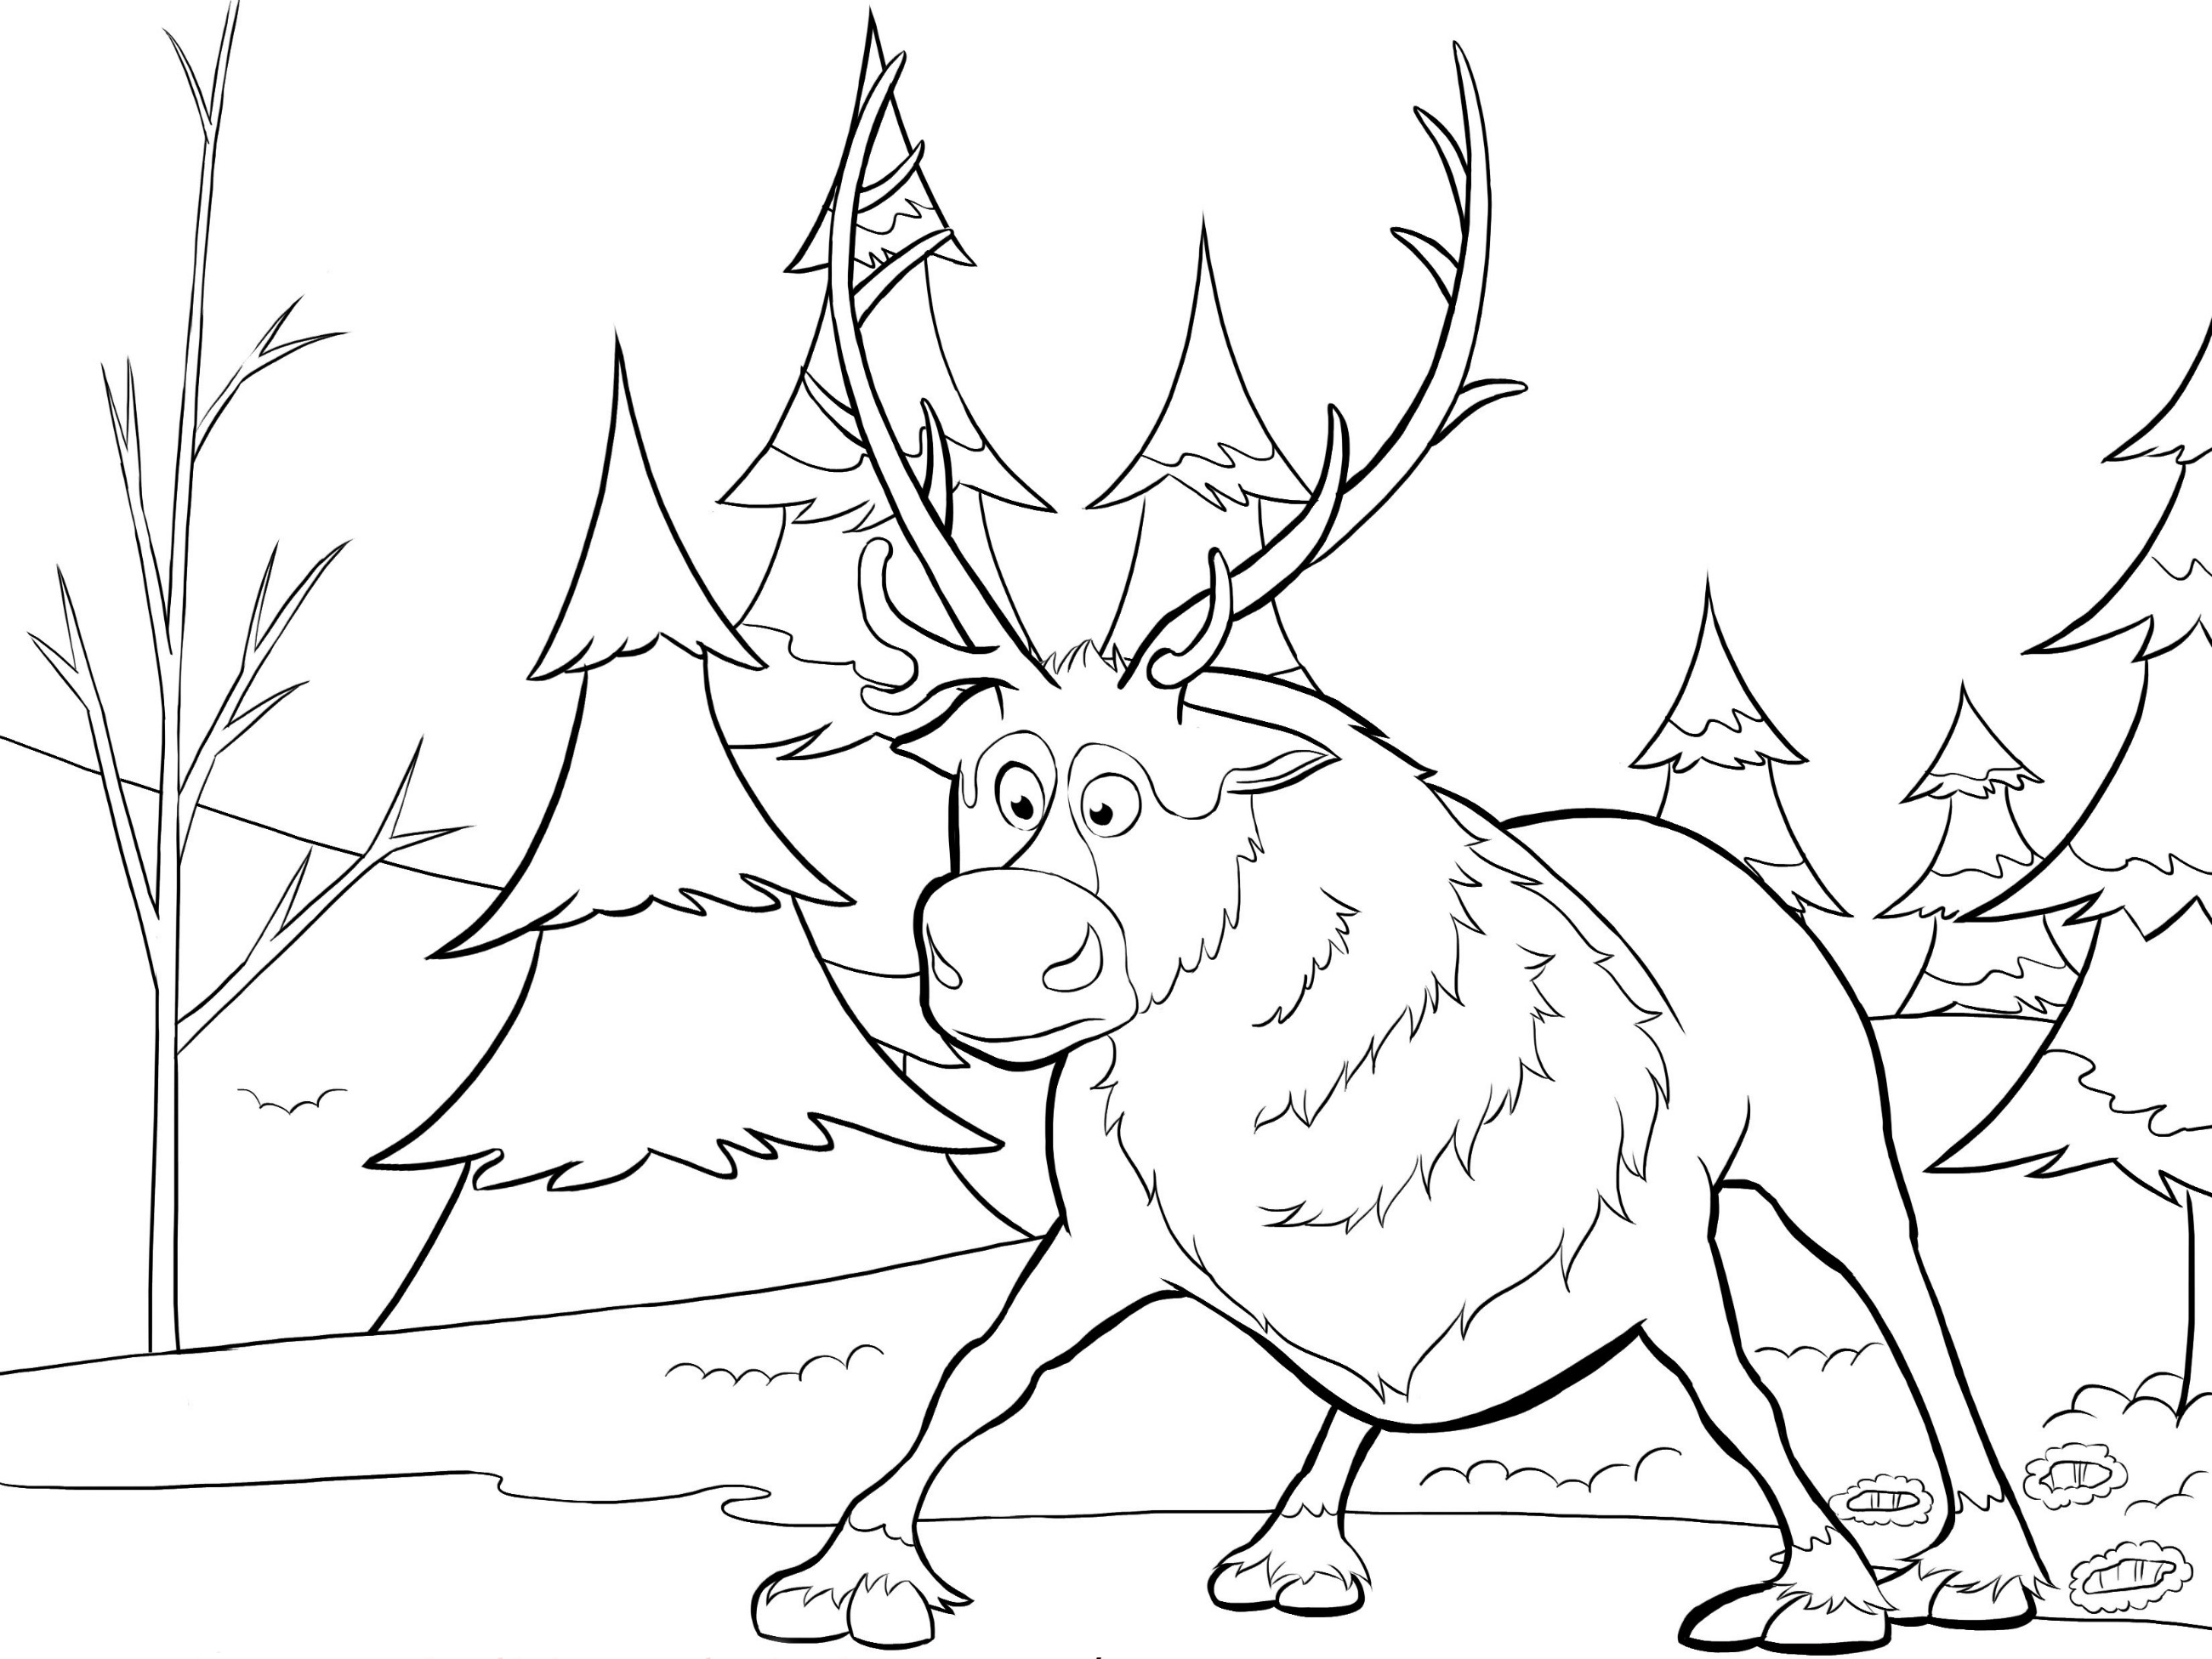 Frozen Coloring Pages On Coloring Book : Free printable frozen coloring pages for kids best